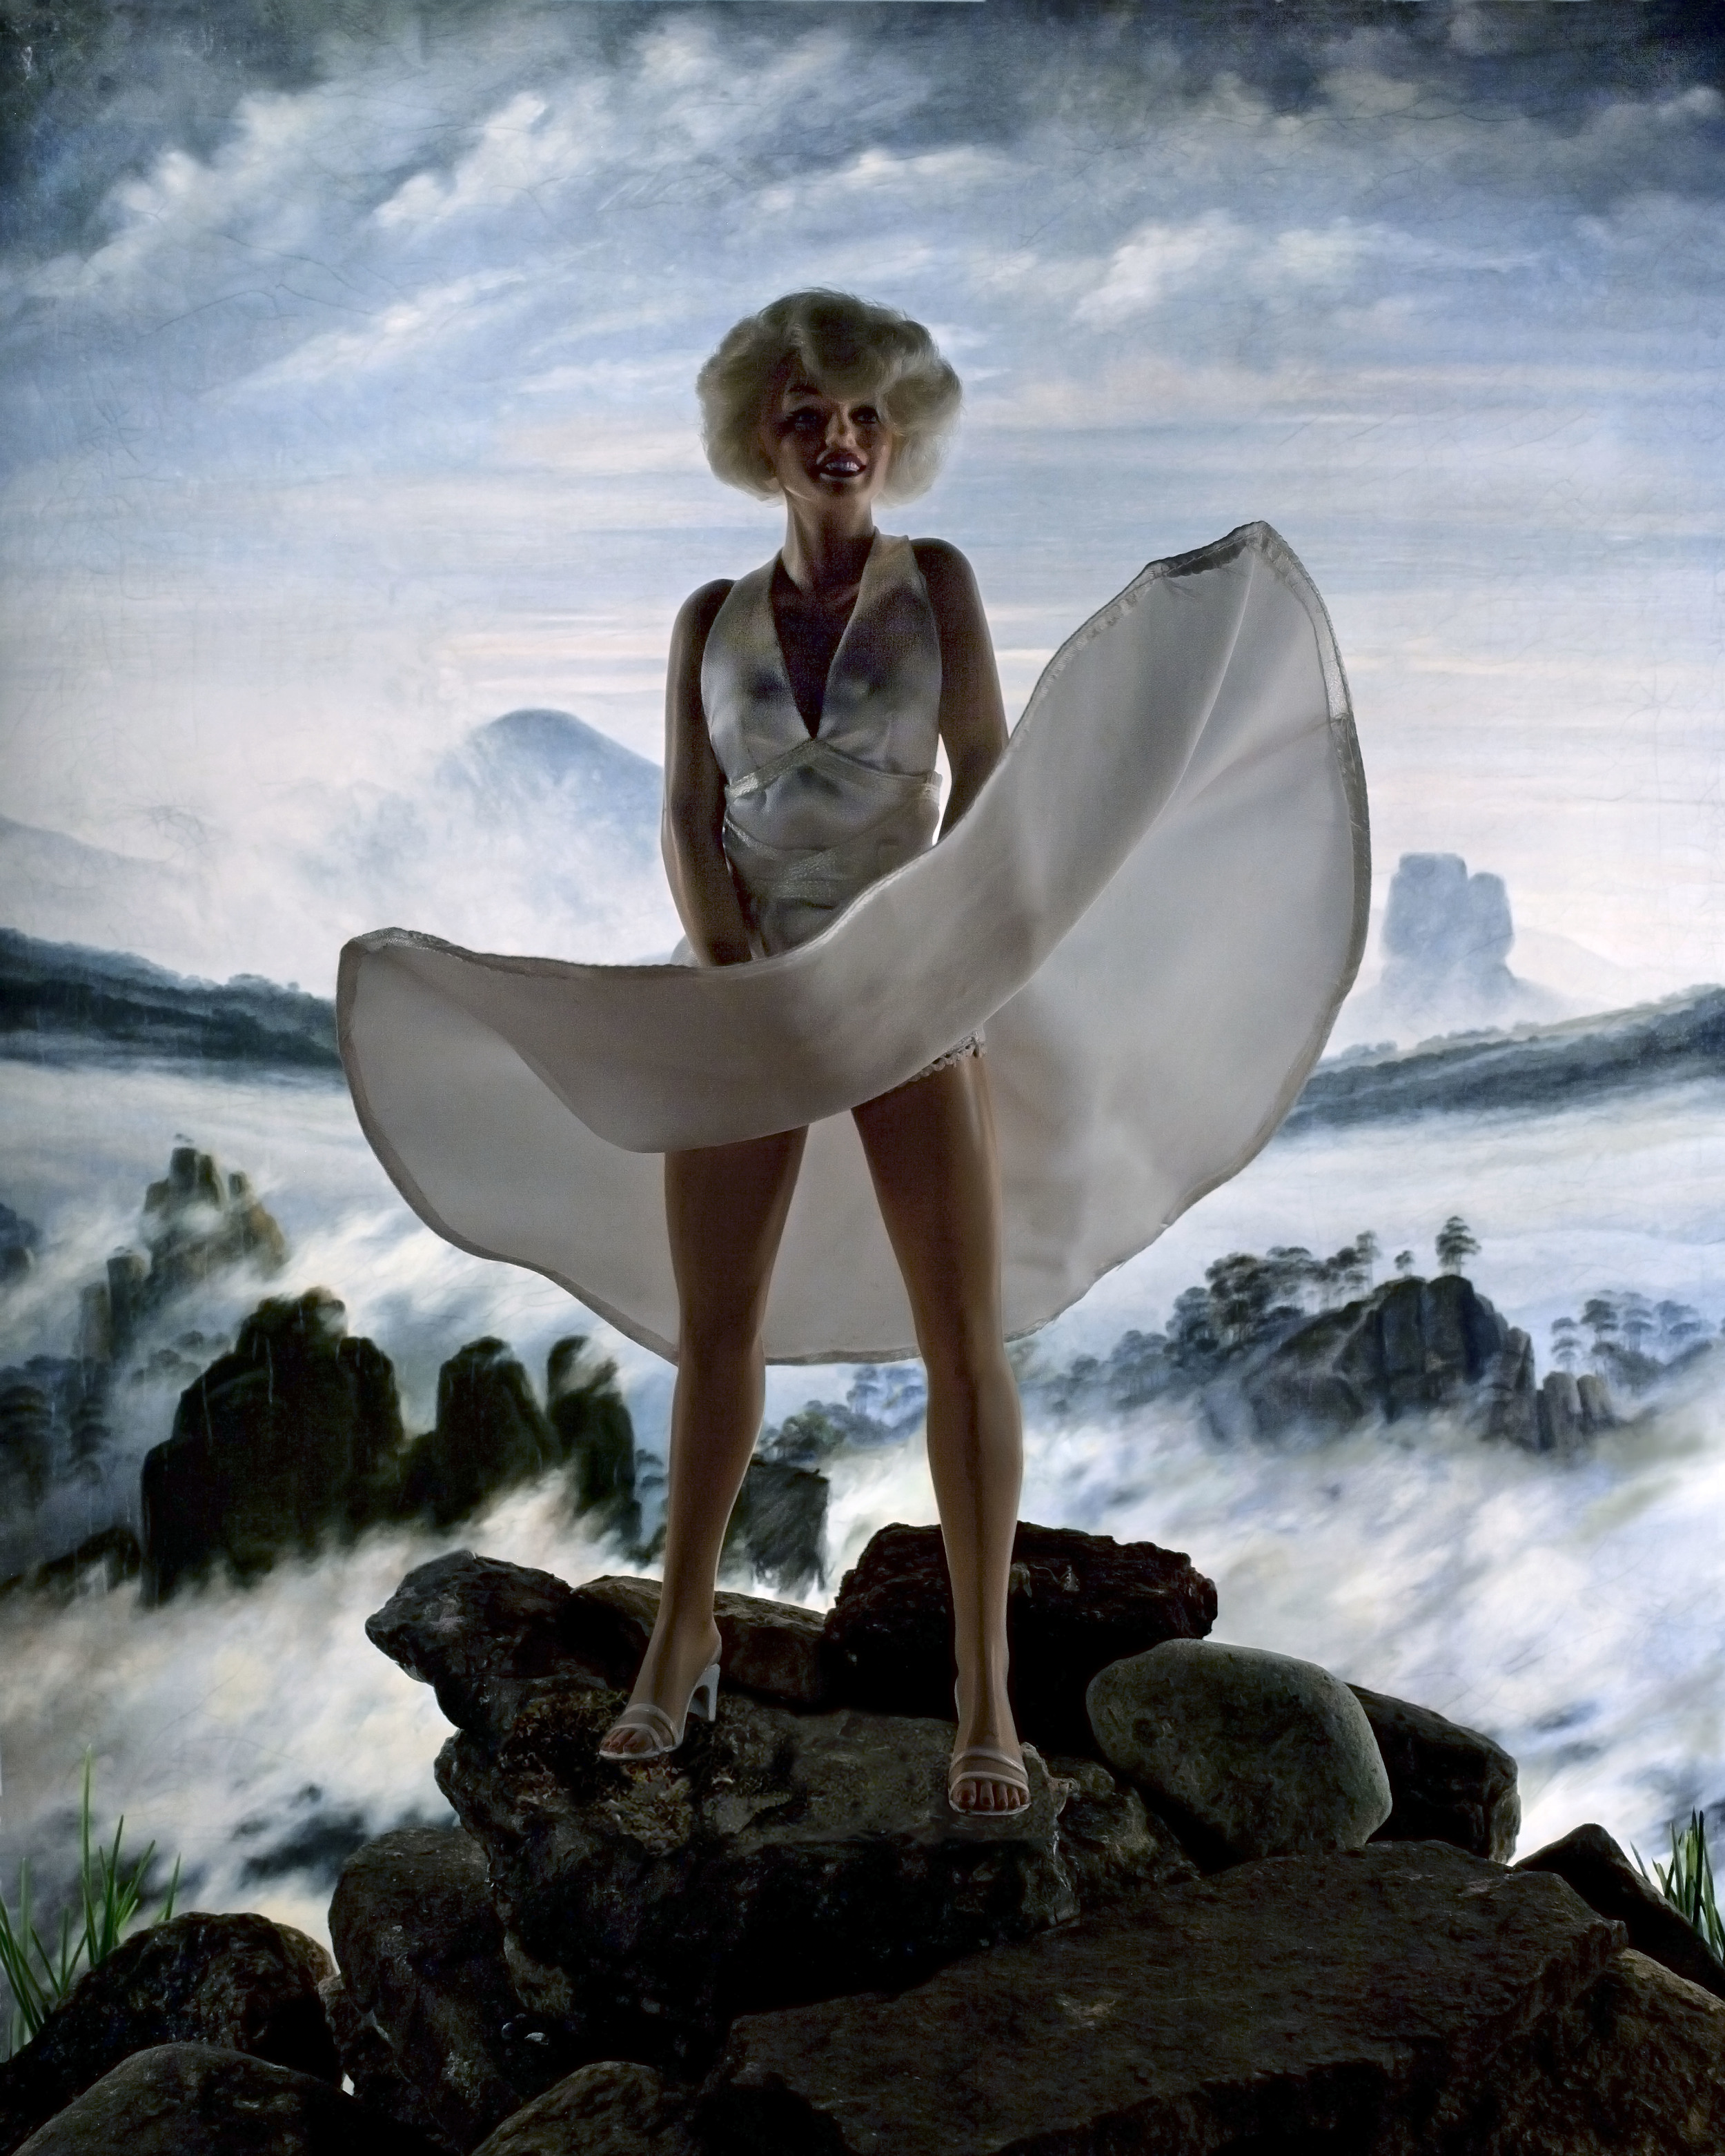 "Wanderer Above a Sea of Ice (Marilyn), Digital Photograph, 2012, 24"" x 30"""